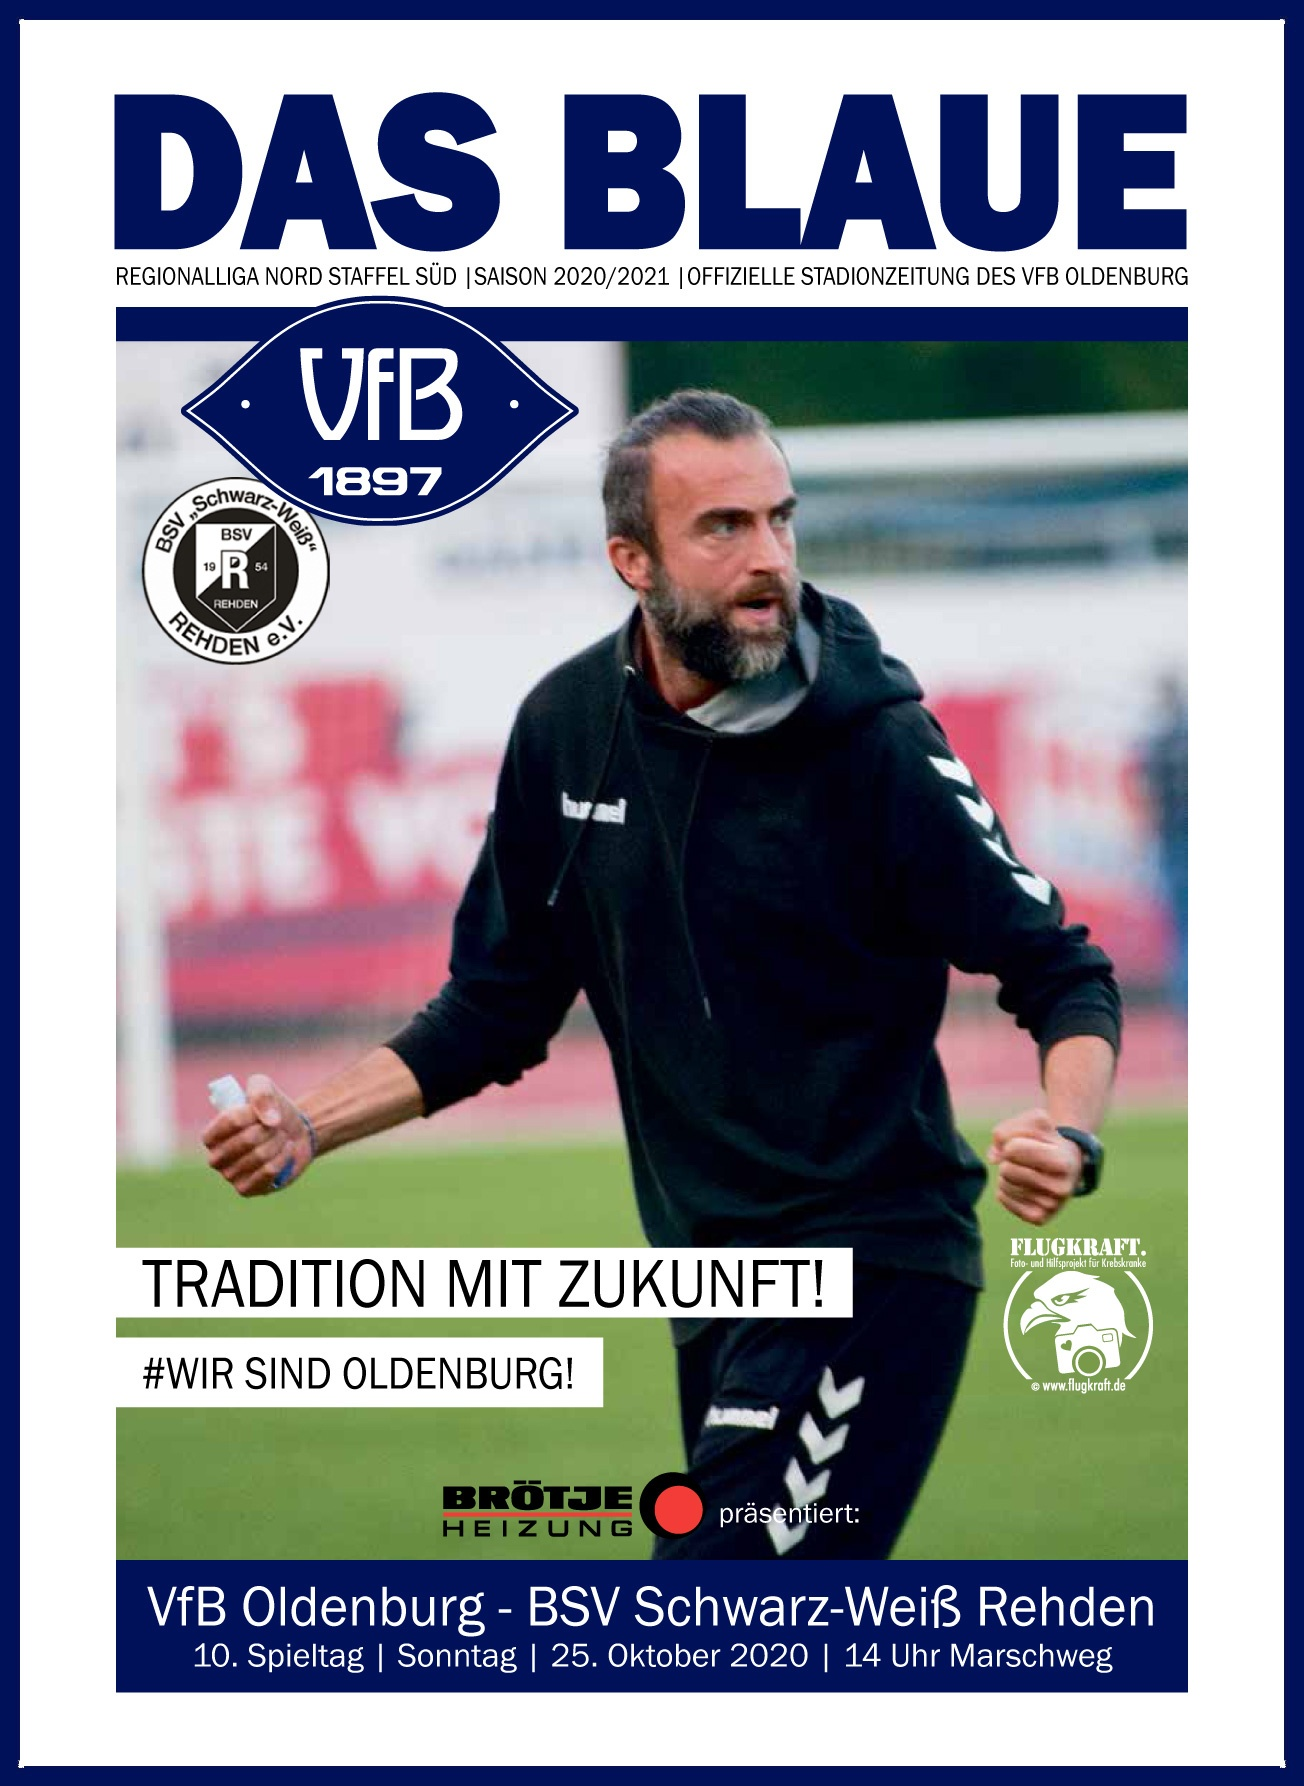 https://vfb-oldenburg.de/wp-content/uploads/2020/10/VFB_Oldenburg_10_Spieltag_2020_2021-1.jpg